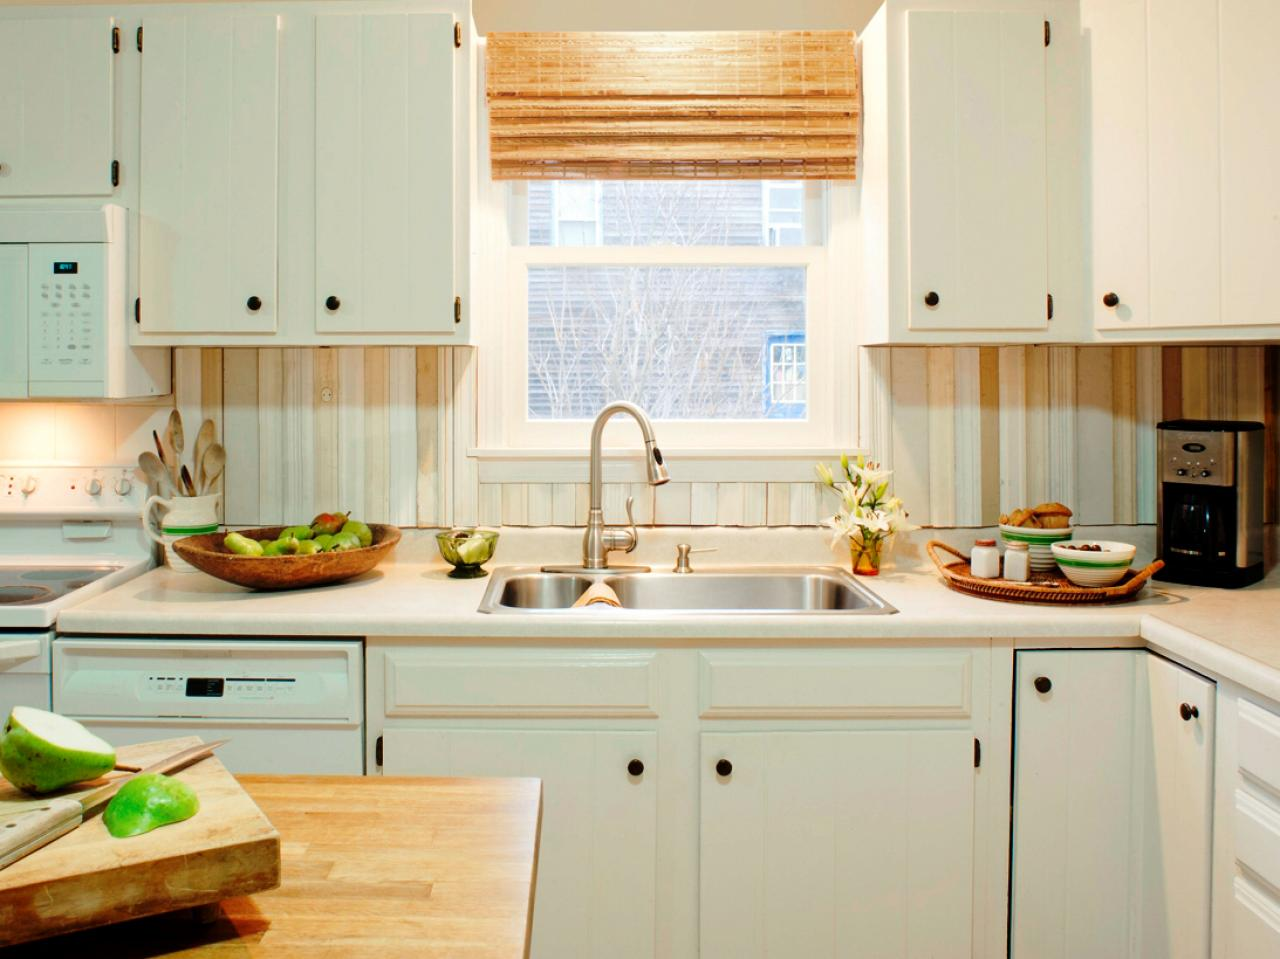 75 kitchen backsplash ideas for 2018 tile glass metal etc - Backsplash ideas kitchen ...